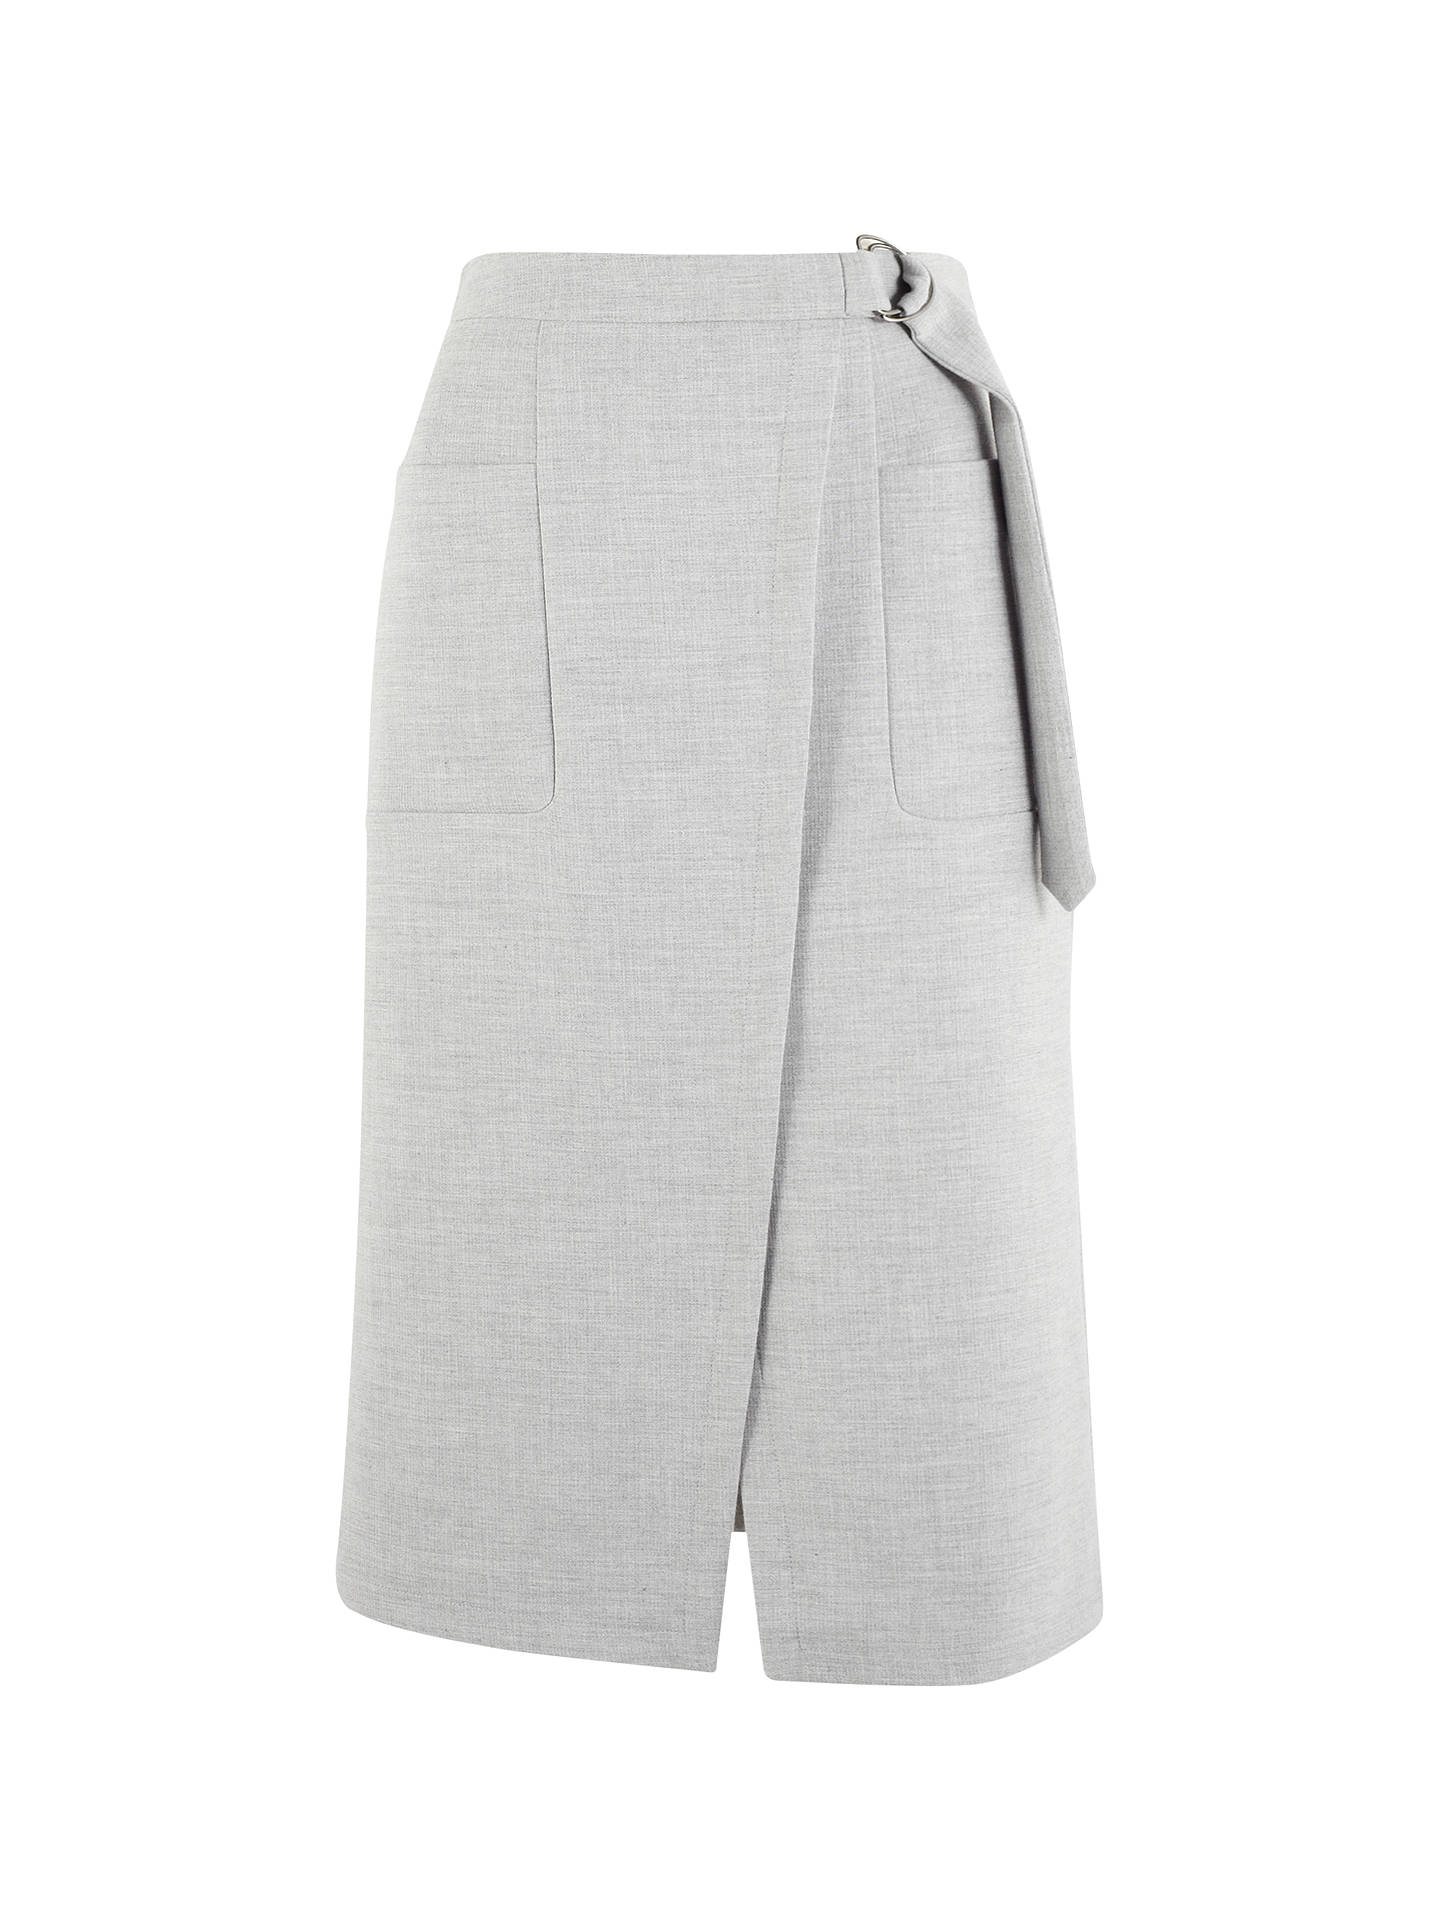 Buy Phase Eight Amber D-Ring Skirt, Grey, 8 Online at johnlewis.com